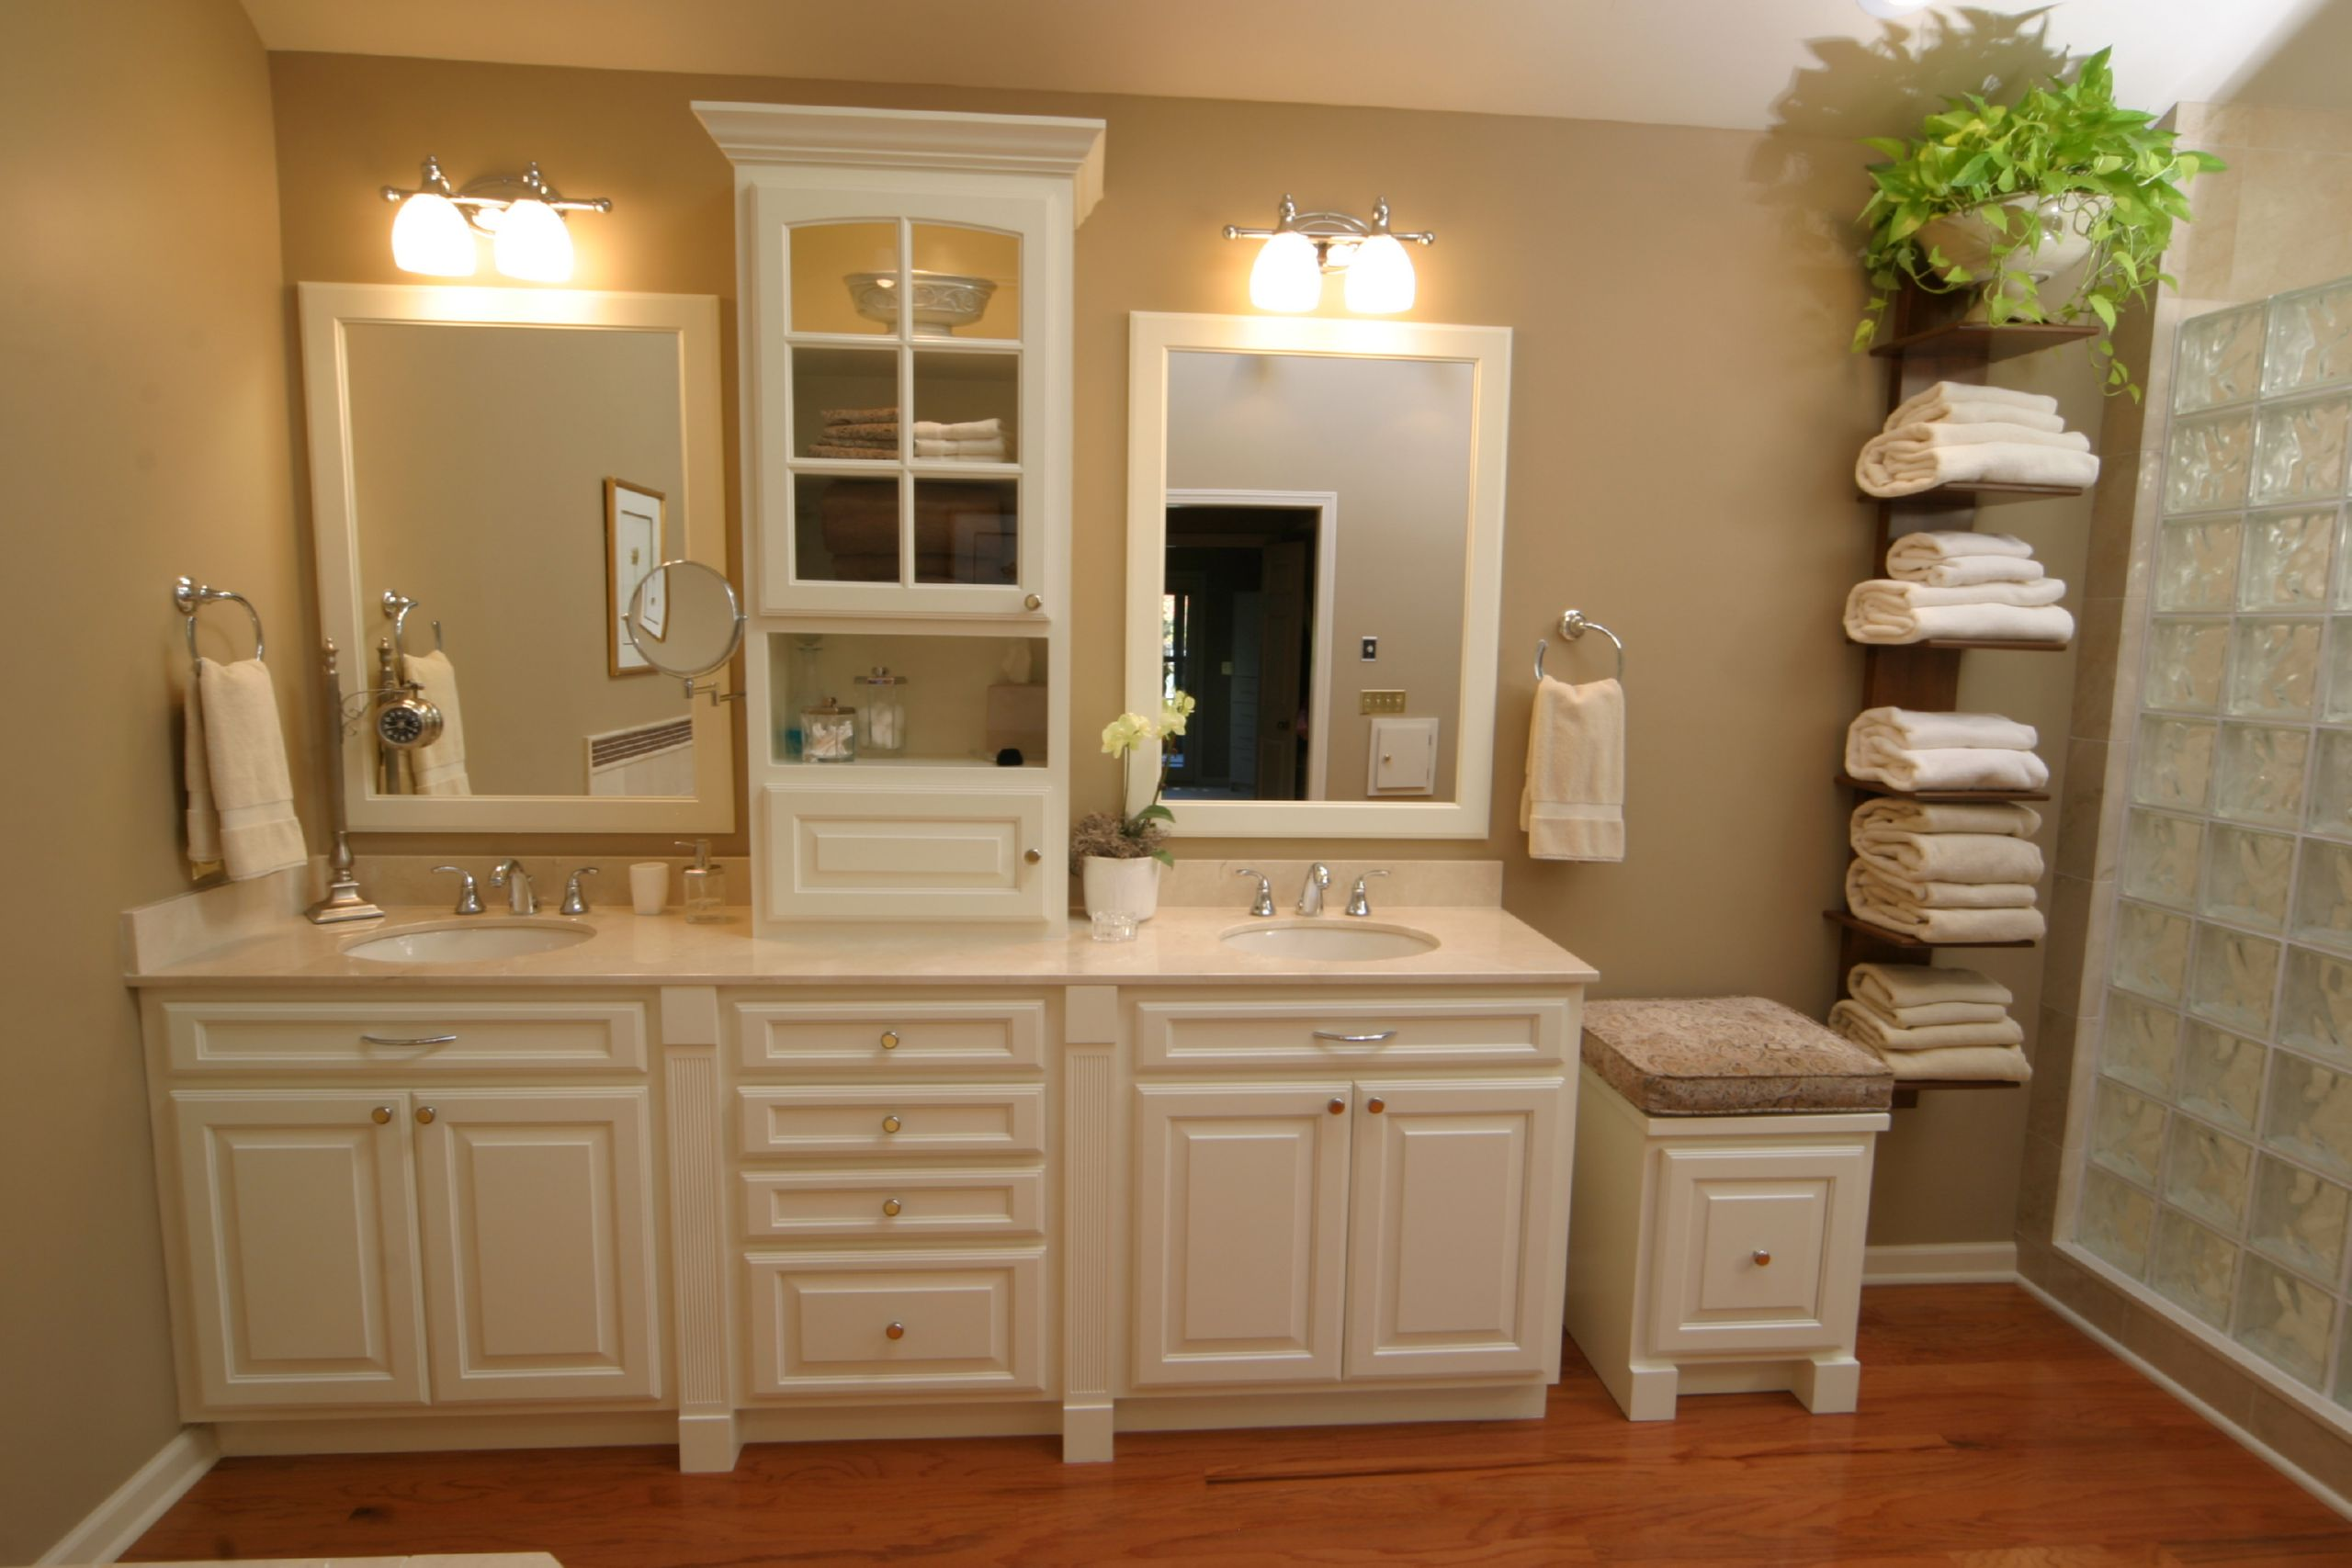 Bathroom remodeling tips njw construction for Redo bathtub